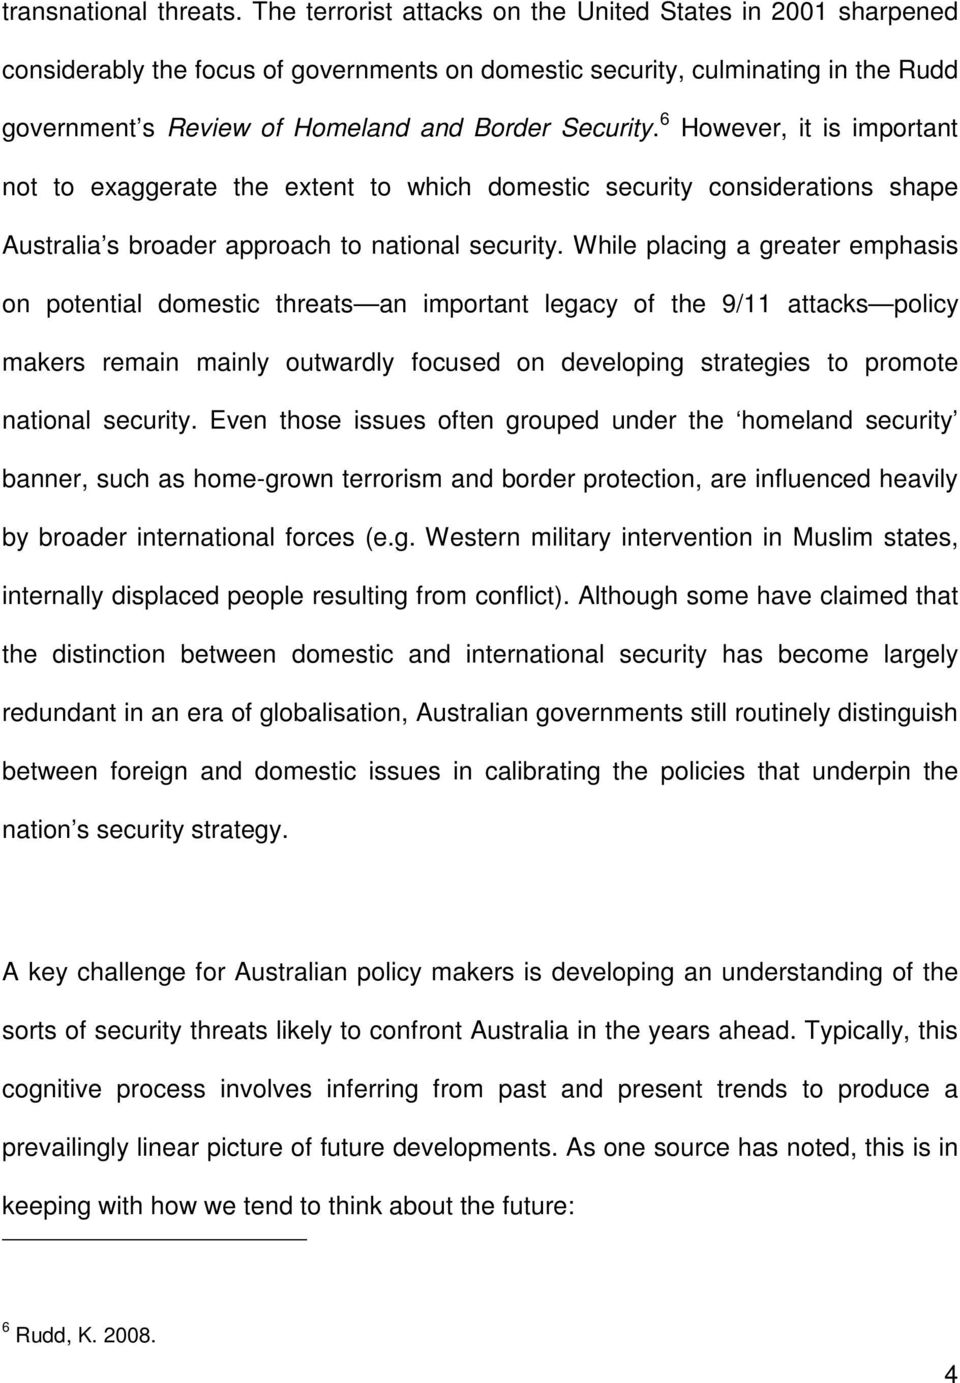 6 However, it is important not to exaggerate the extent to which domestic security considerations shape Australia s broader approach to national security.